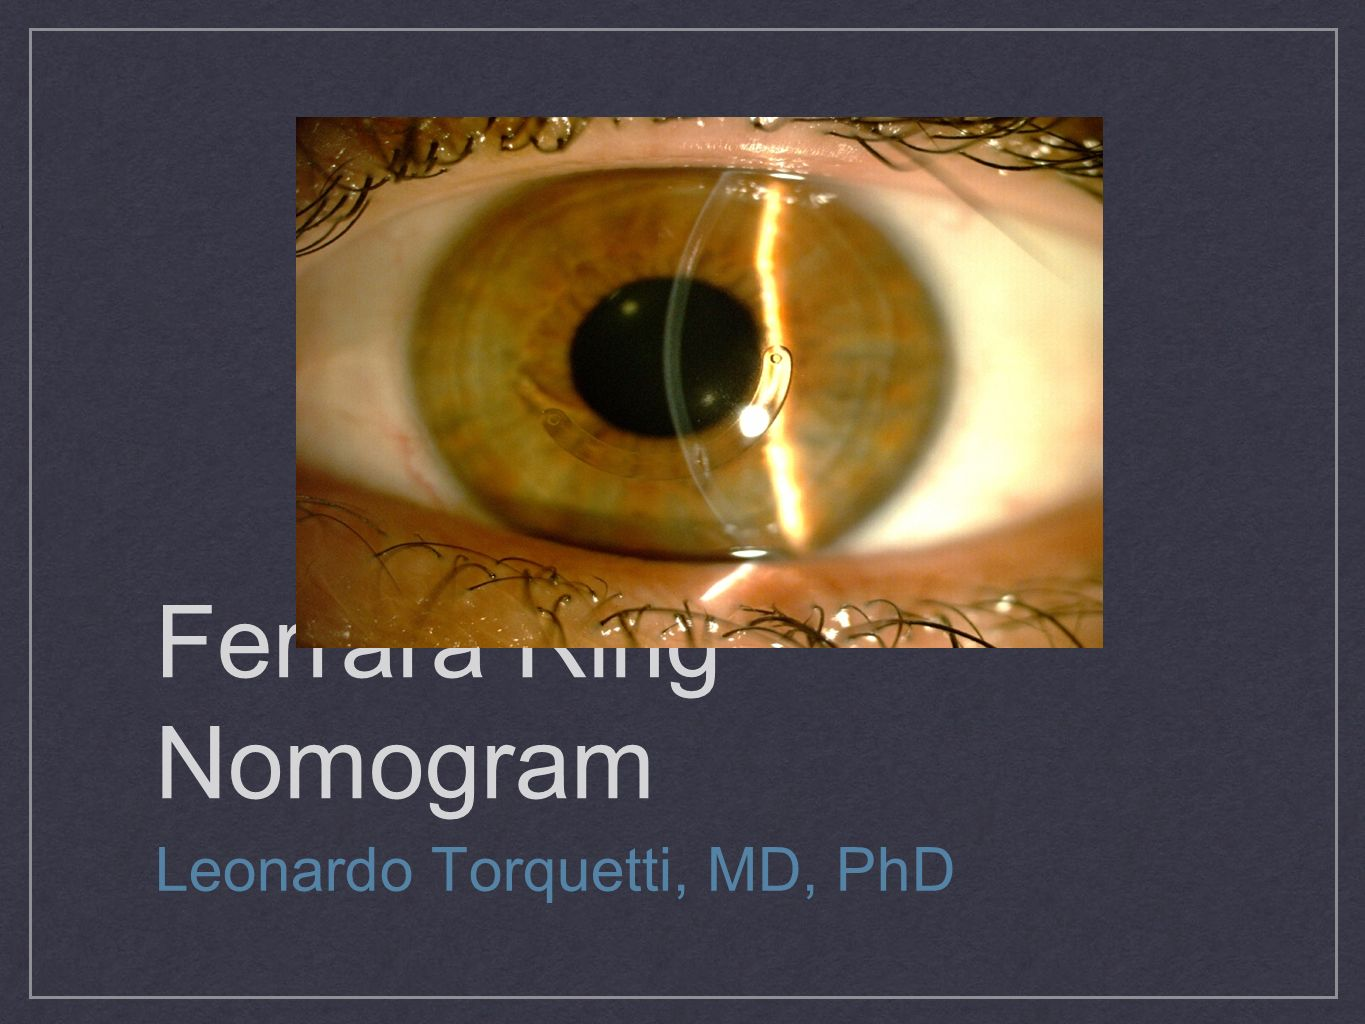 Ferrara Ring Nomogram Leonardo Torquetti, MD, PhD